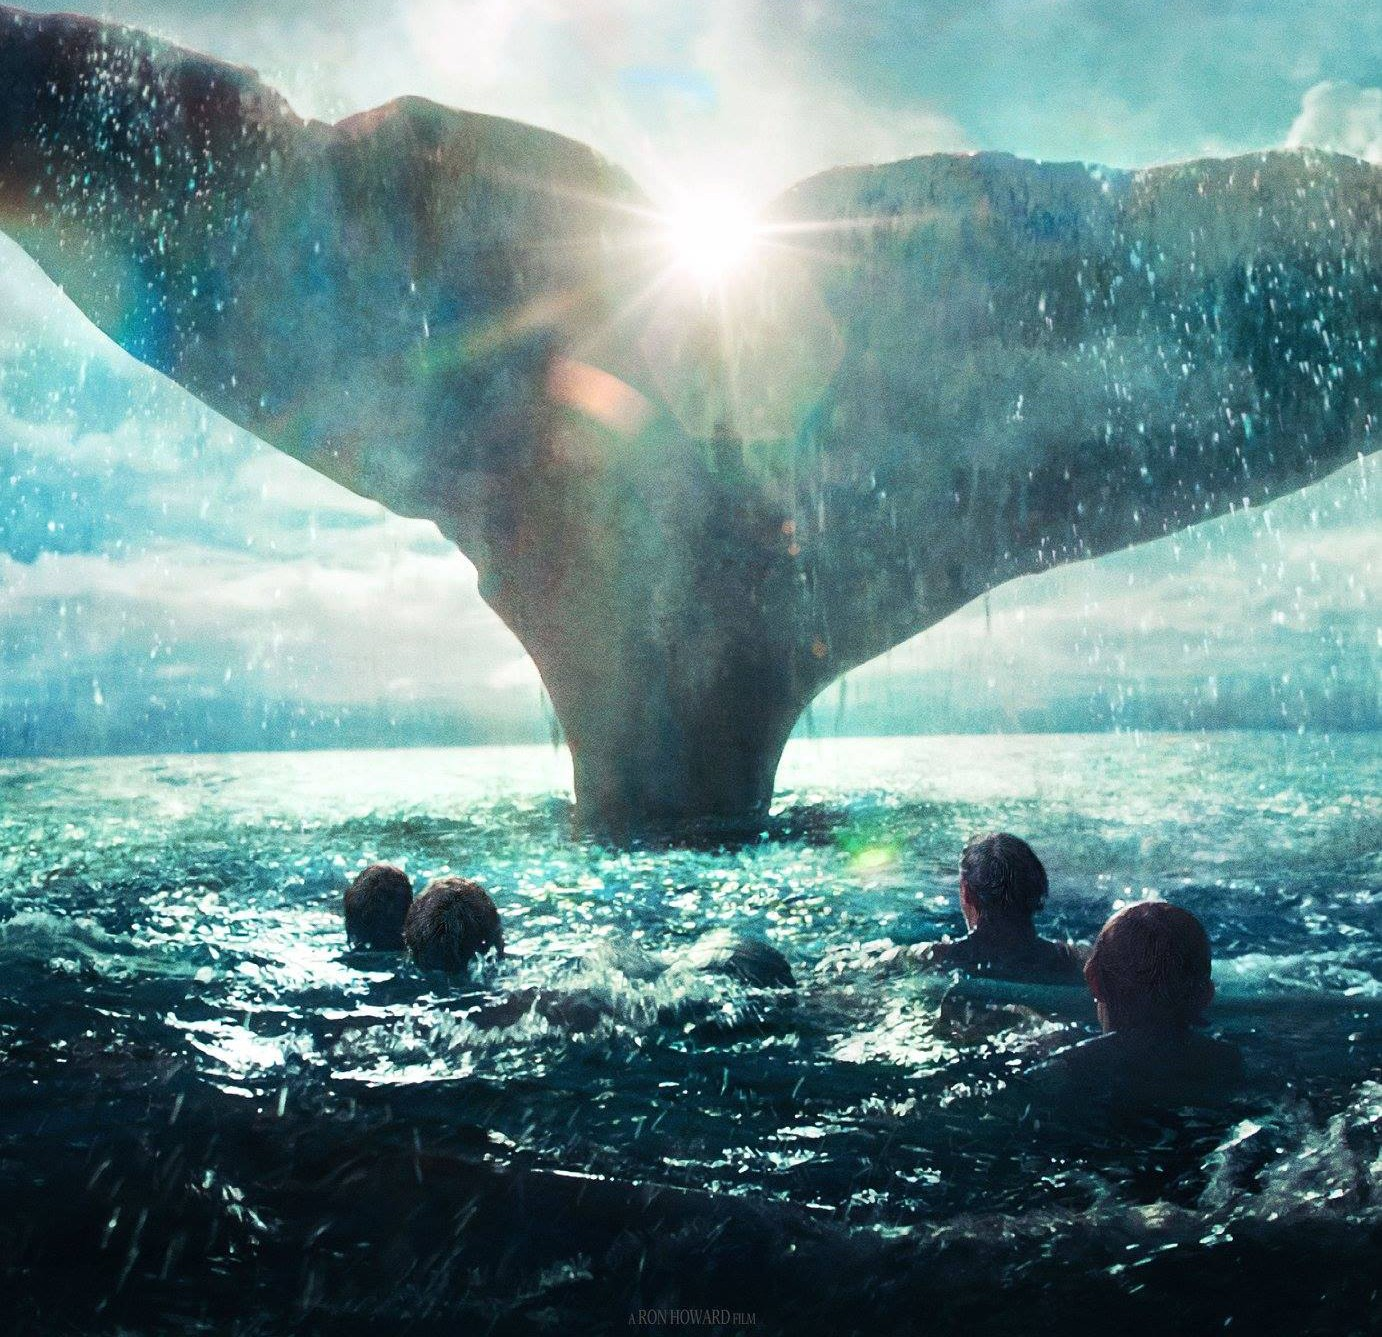 SSN Box Office Trending Report For 12/11/15: Will 'In The Heart Of The Sea' Conjure Tidal Waves Or Merely A Ripple In Theaters?